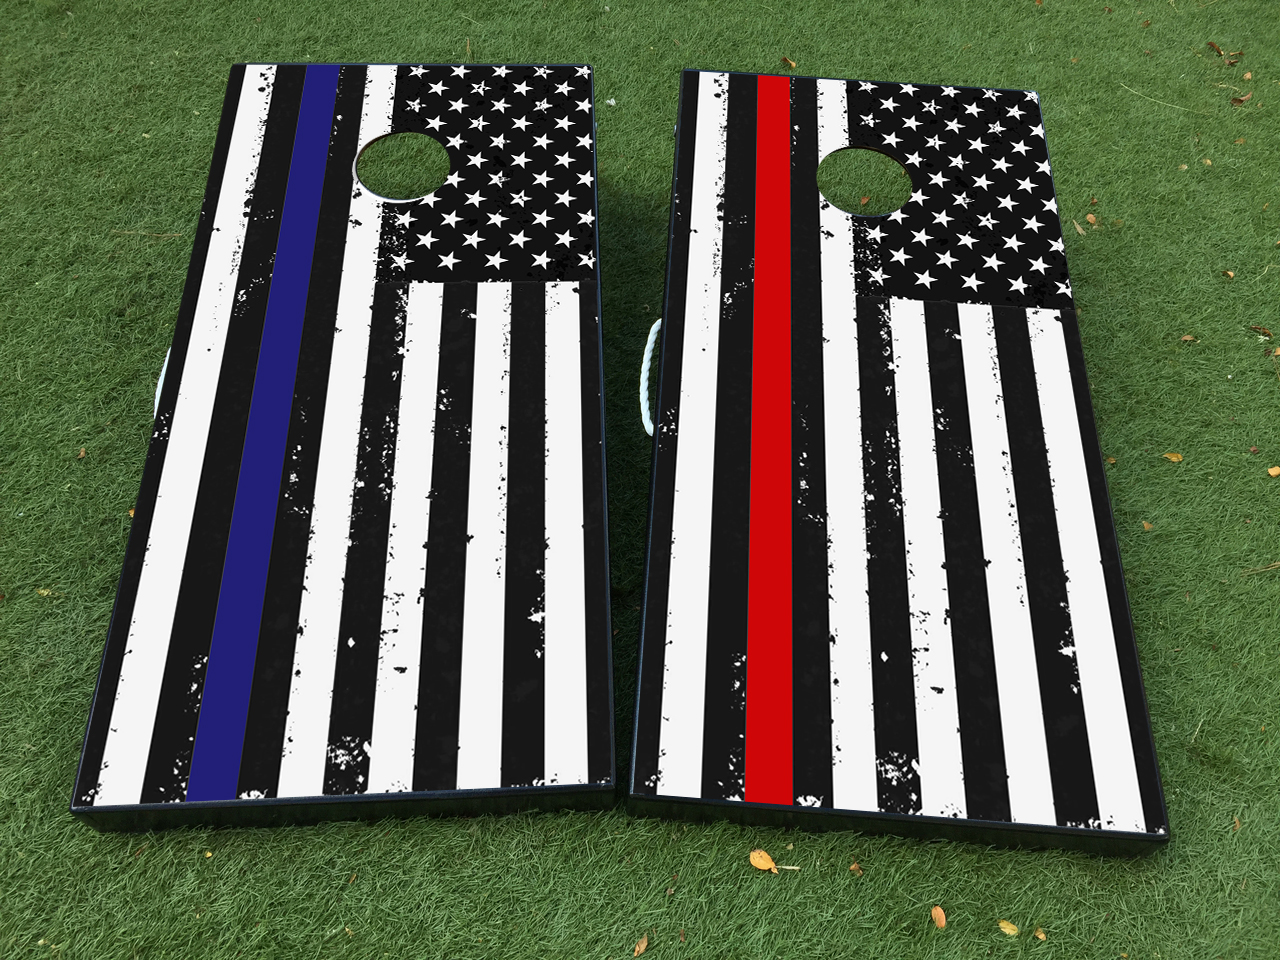 Details about  /American Flag 0238 custom cornhole board vinyl wraps stickers posters decals